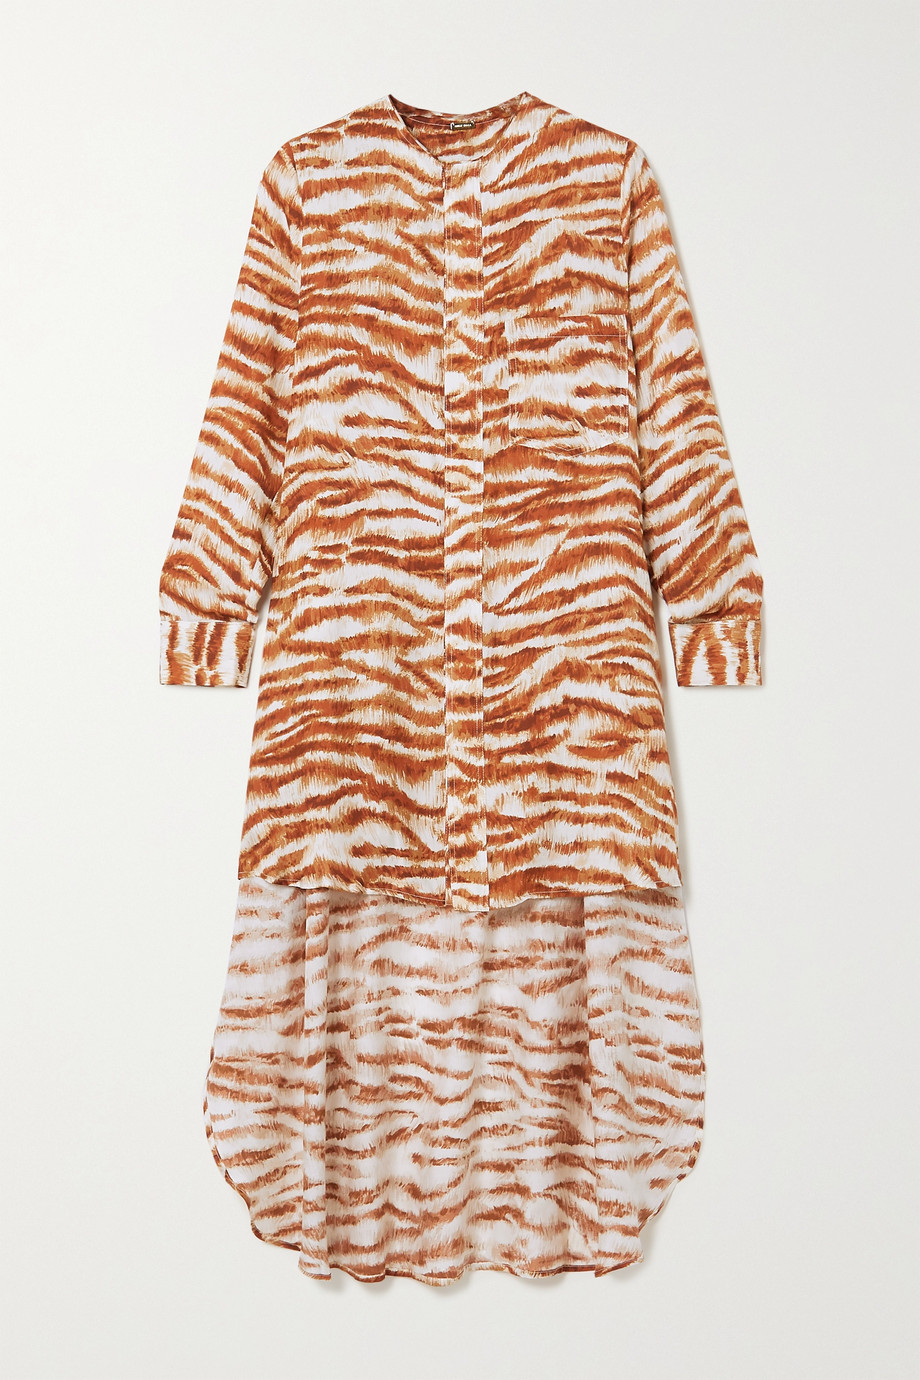 Cult Gaia Thessaly printed jersey tunic